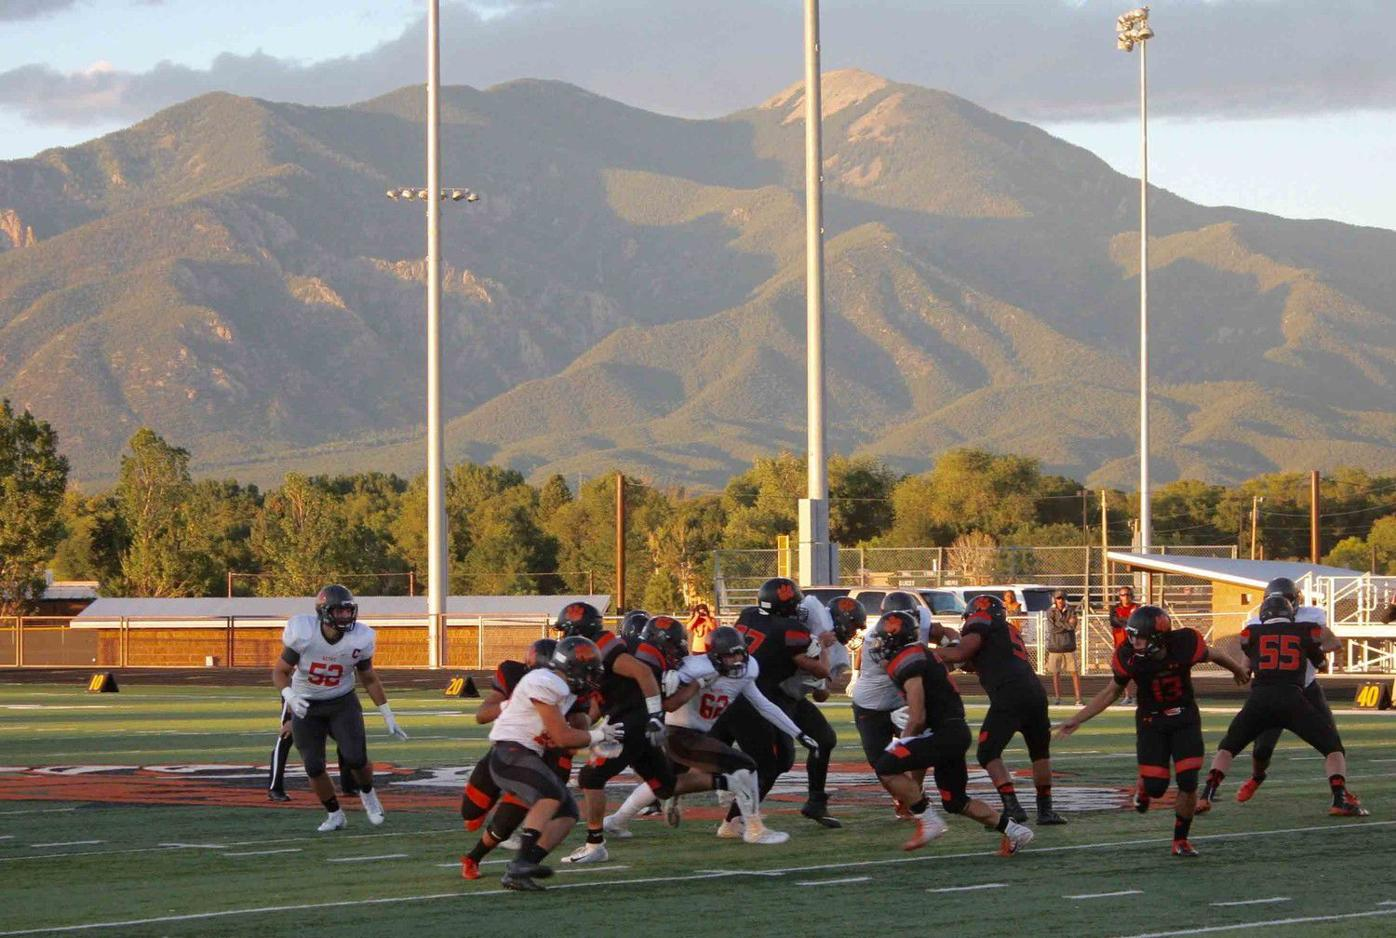 Points keep coming as Taos rallies past Aztec to claim third straight win of the season